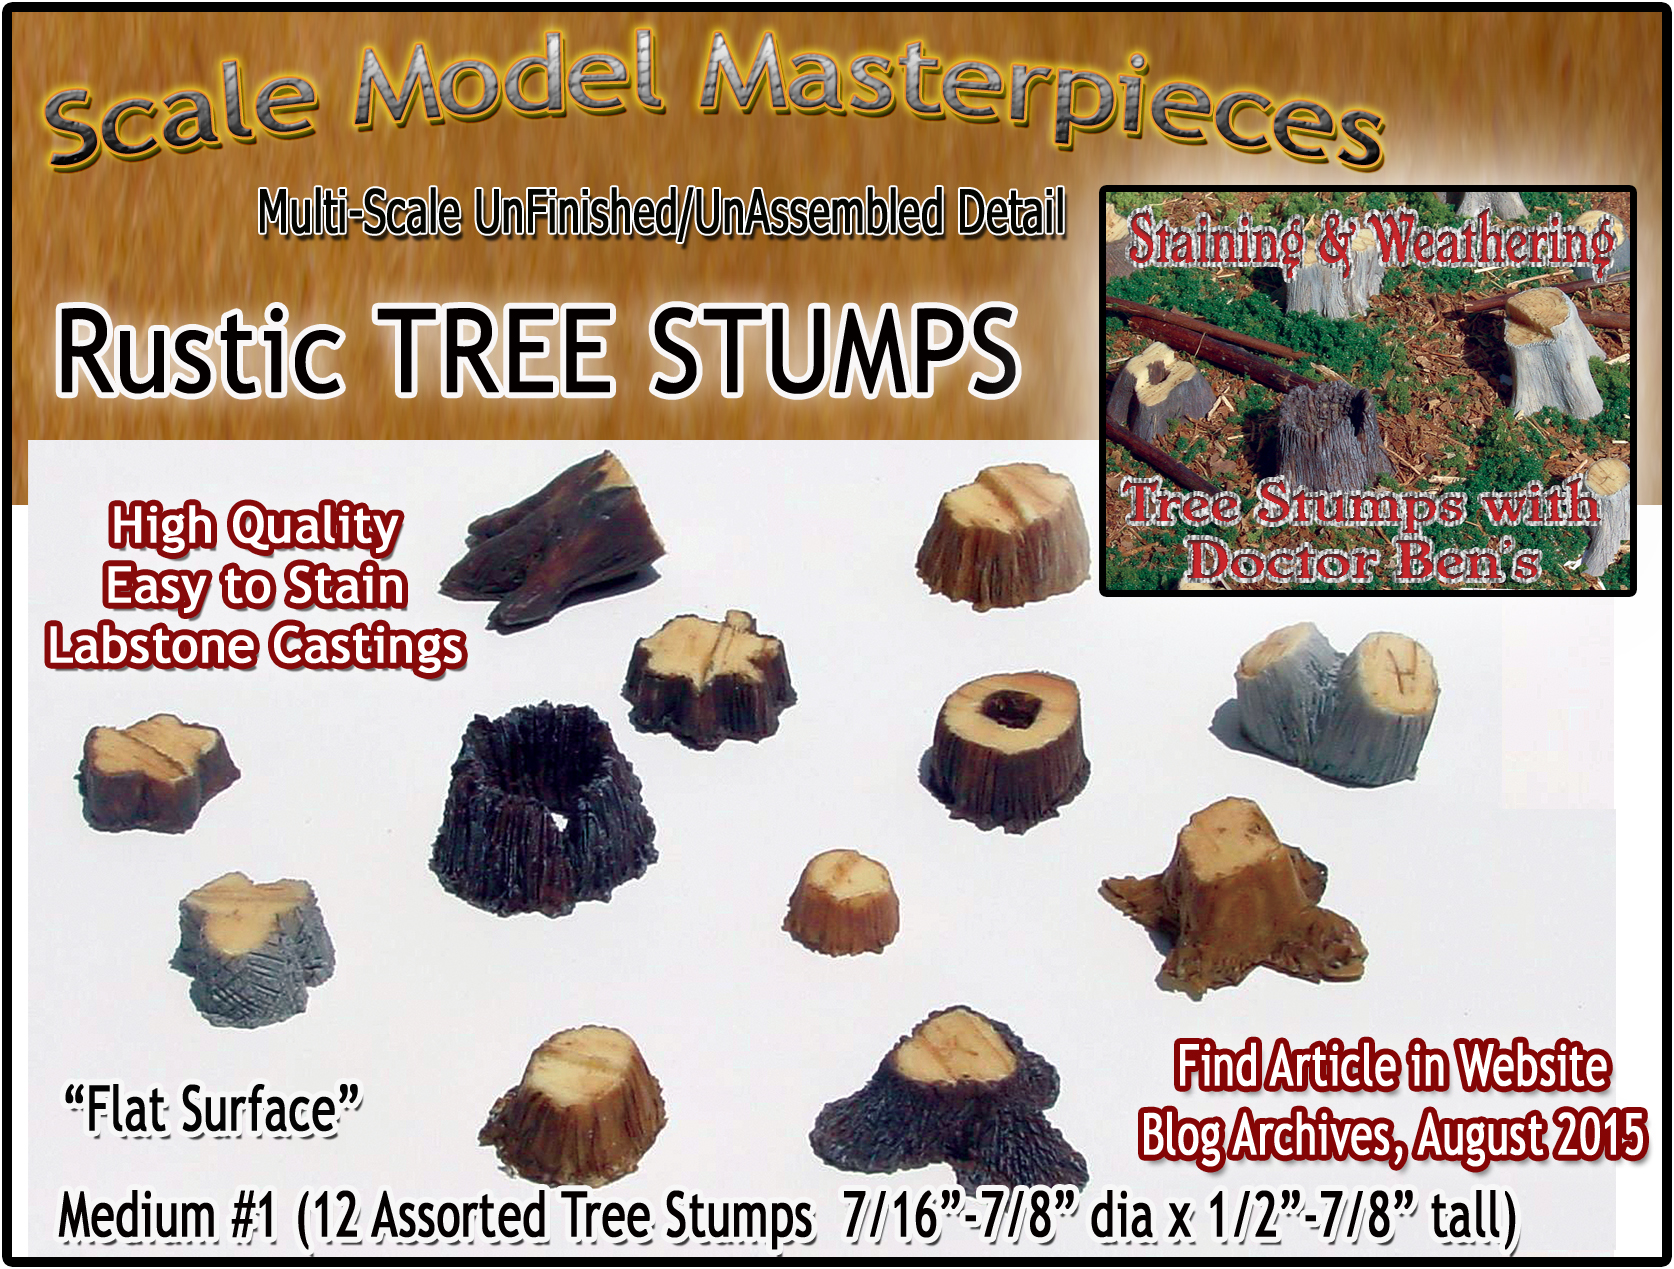 Old Tree Stumps-MEDIUM #1 (Labstone-12pcs) Scale Model Masterpieces Multi Scale